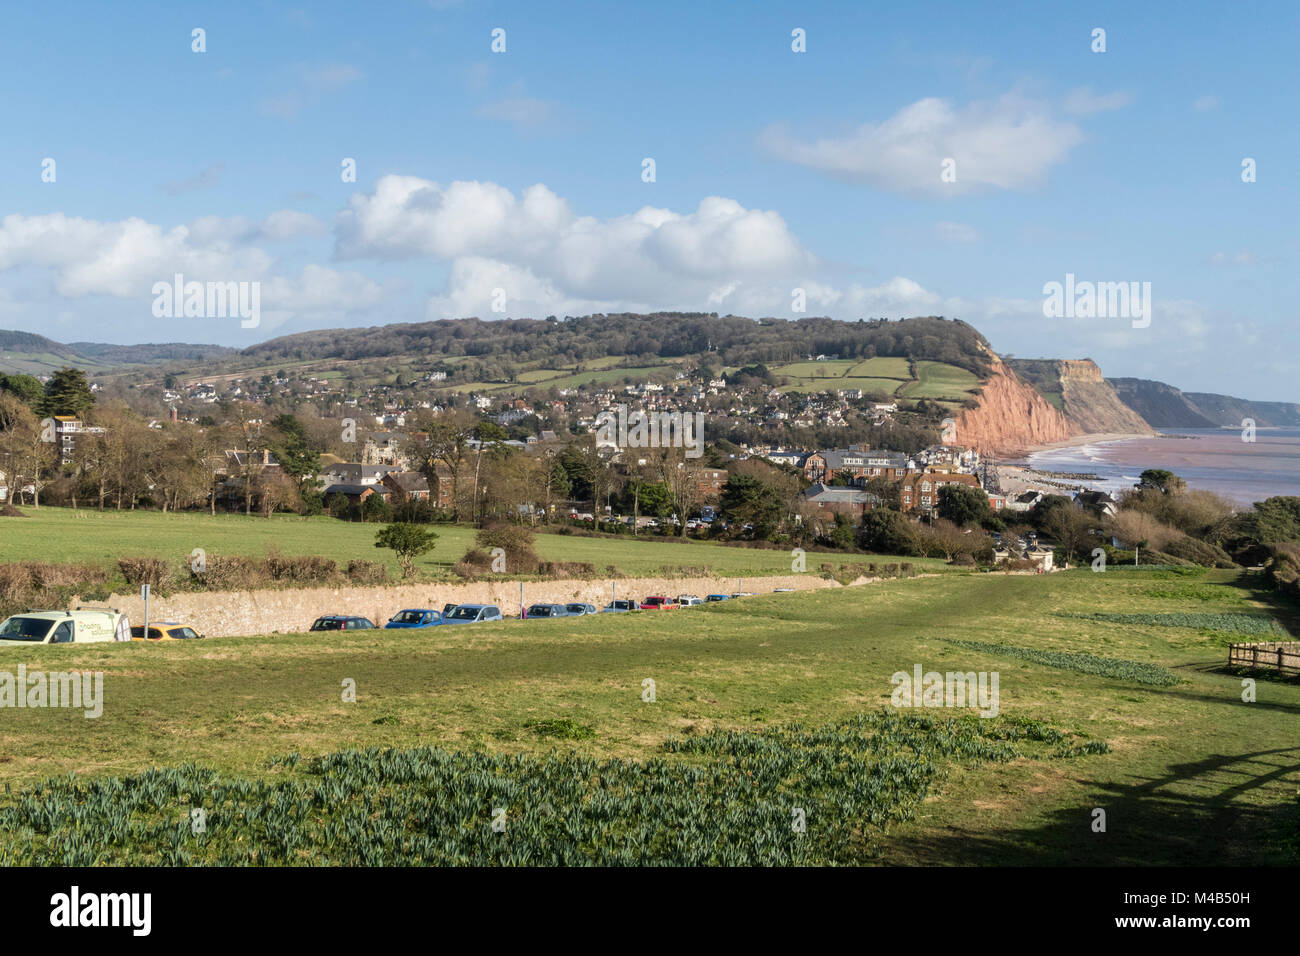 Walkers view of Sidmouth from the South West Coastal Path descending from Peak Hill, Sidmouth,Devon - Stock Image